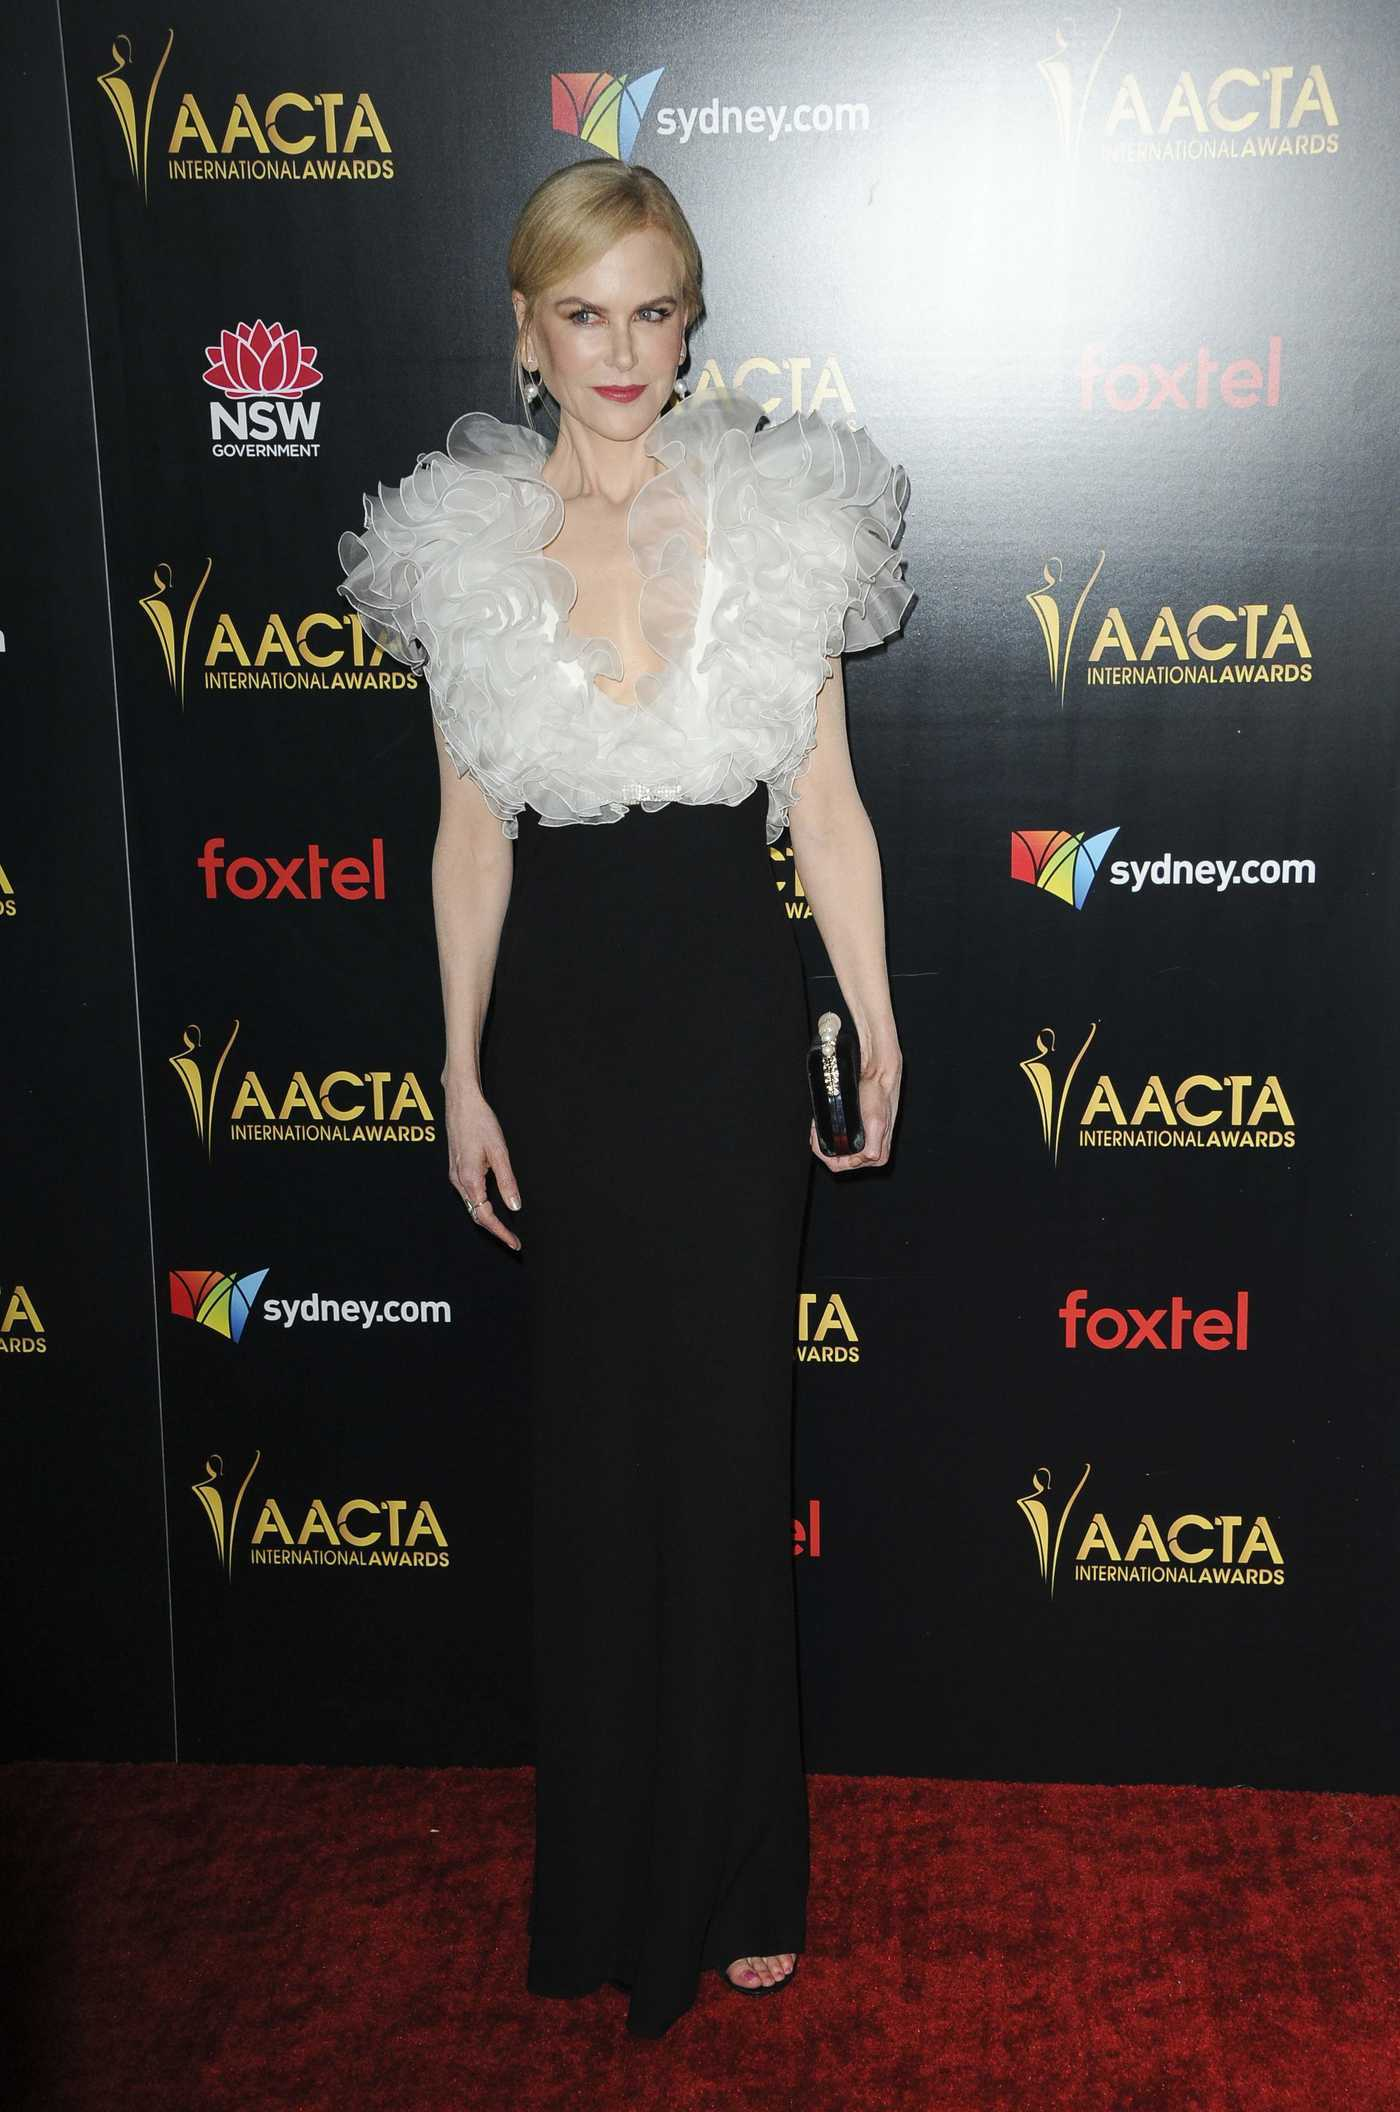 Nicole Kidman Attends the 8th AACTA International Awards in Los Angeles 01/04/2019